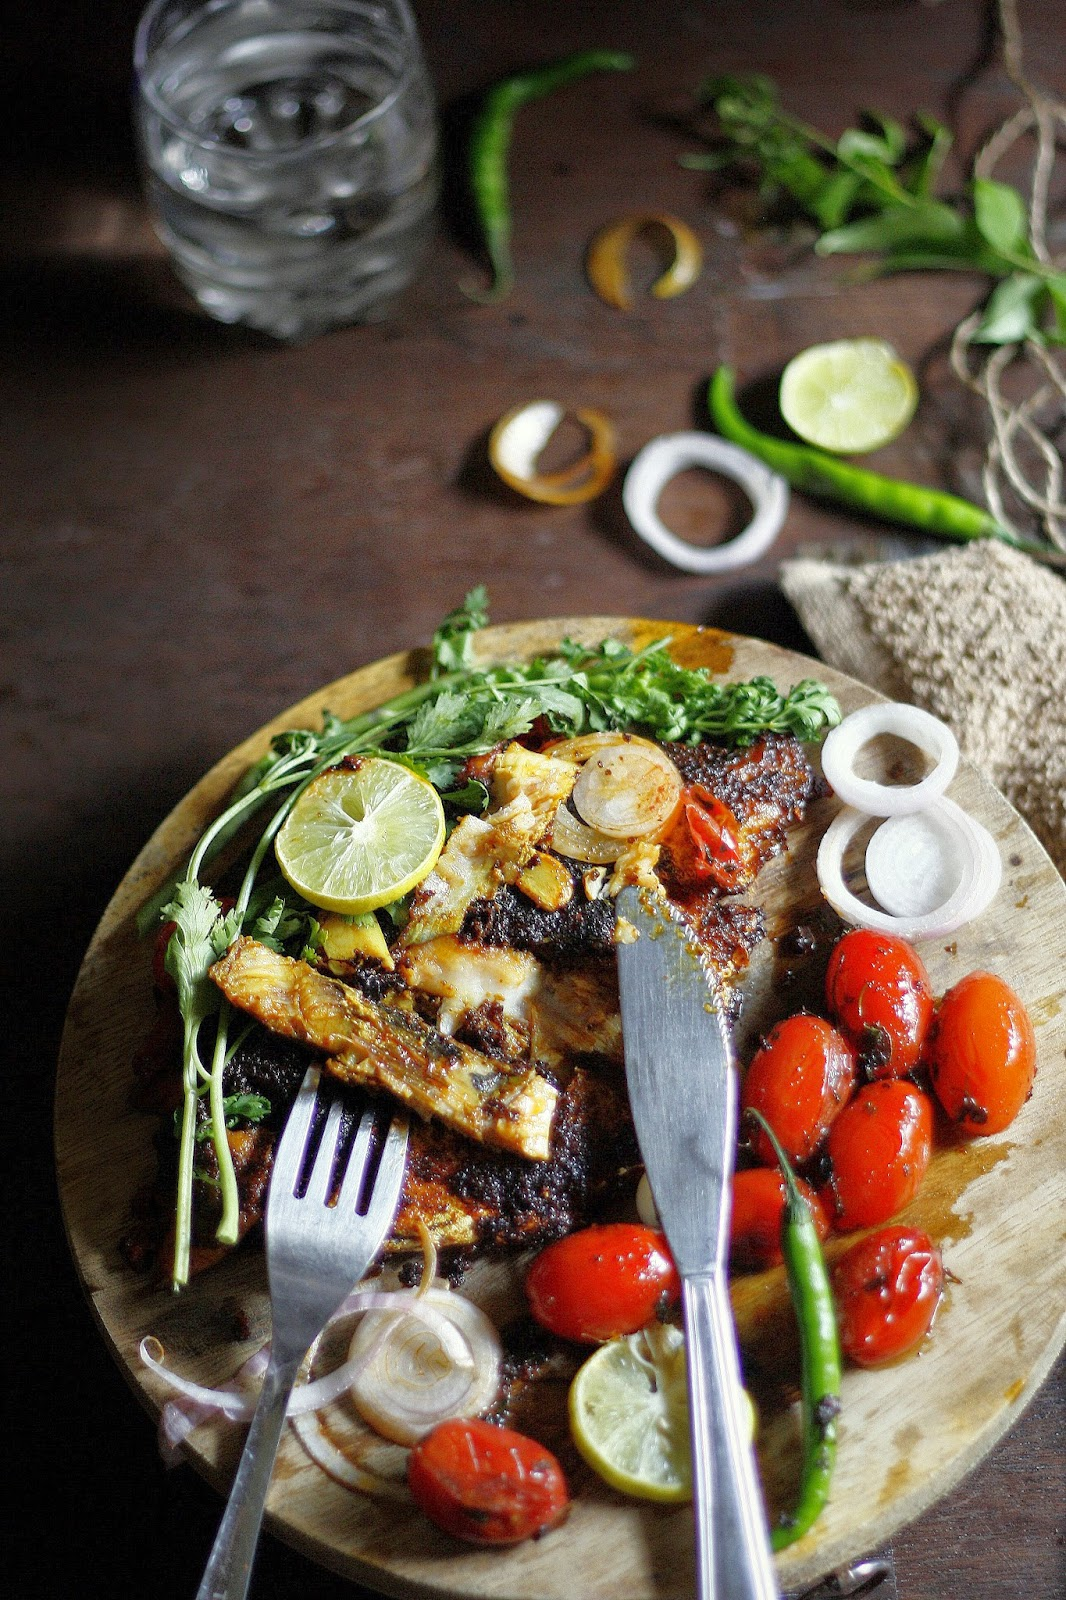 A delicious,pan fried pomfret dish made with authentic Konkani masala. Its spicy, its tangy and it smells heavenly from the curry leaves and coconut. As for the fish, think healthy ,low oil fish that's crispy on the outside and wonderfully succulent inside. Perfection!!!